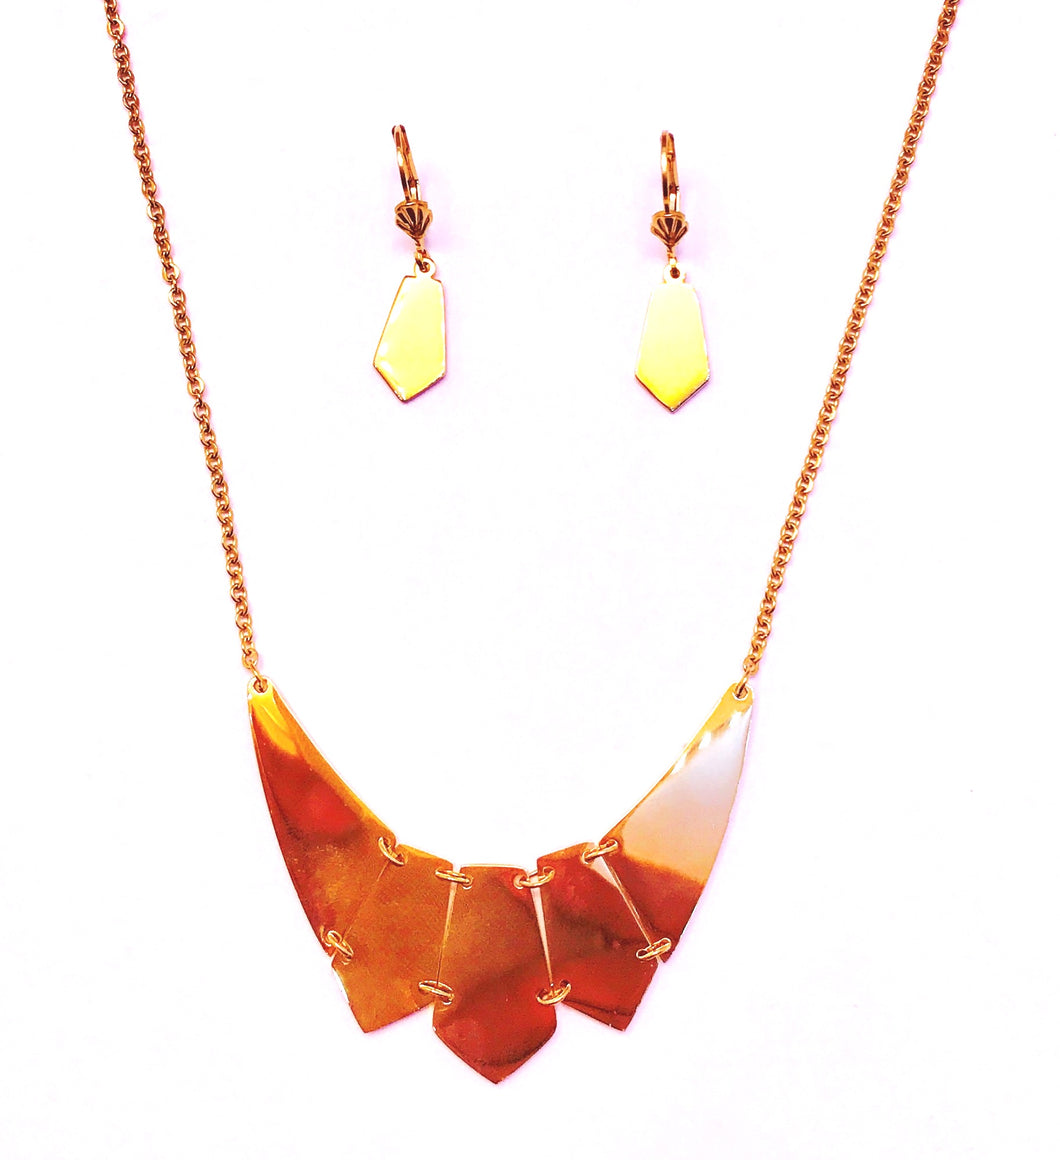 gold necklace + Earrings set